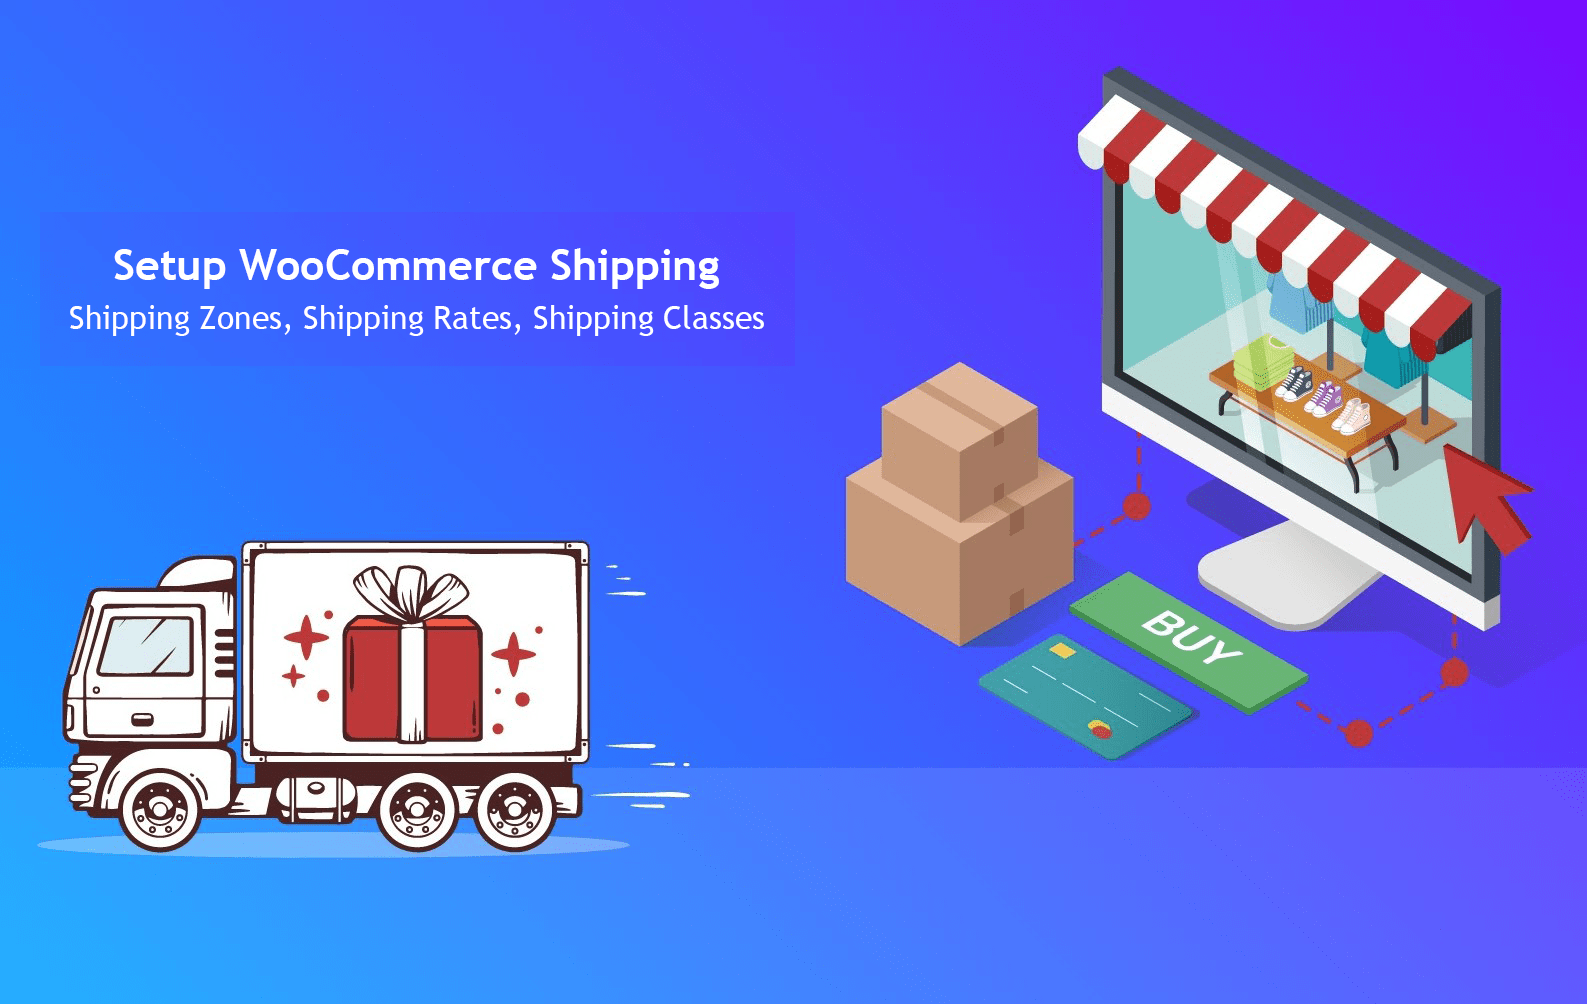 How to set up Shipping Zones, Shipping Rates, Shipping Classes in WooCommerce